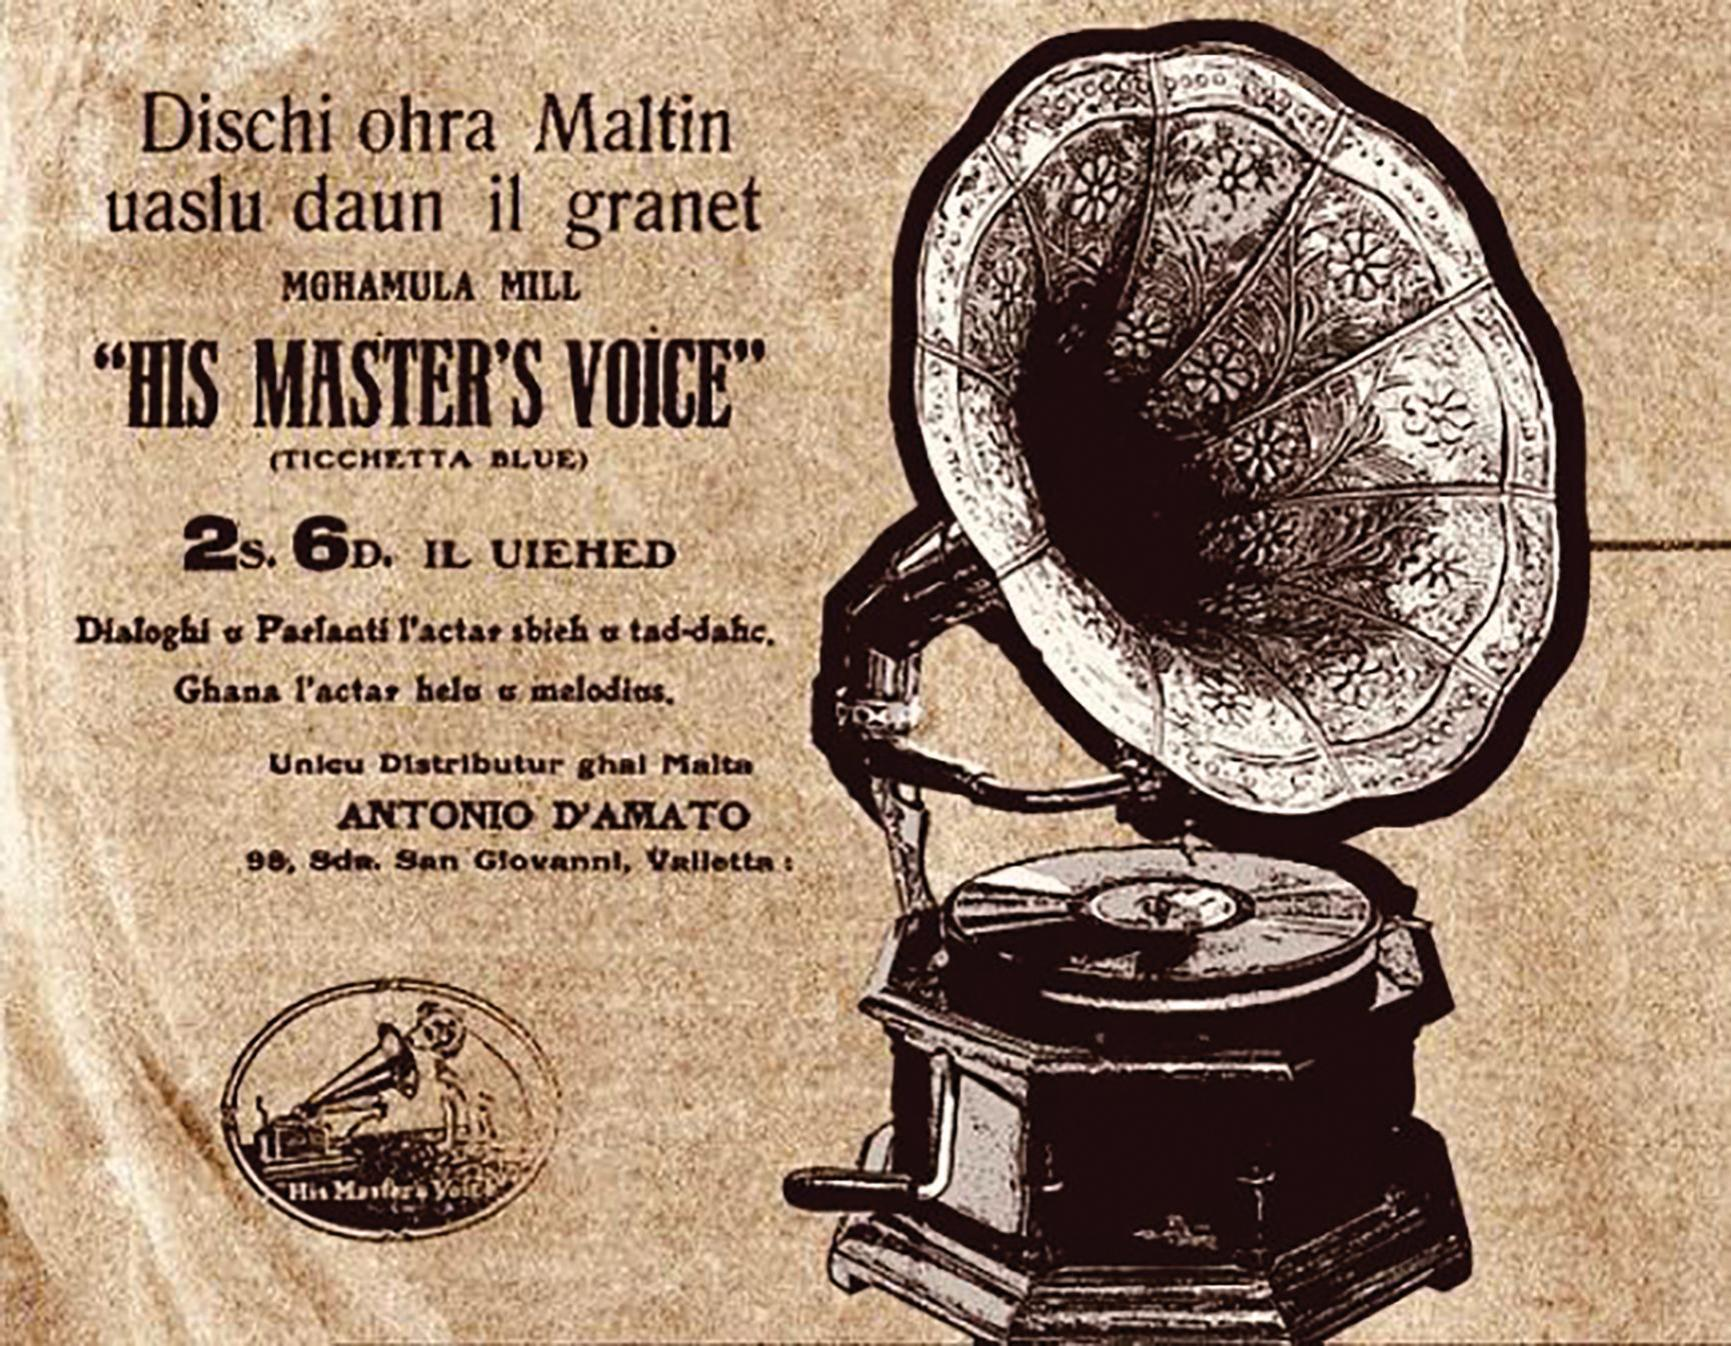 An advert for D'Amato Records.